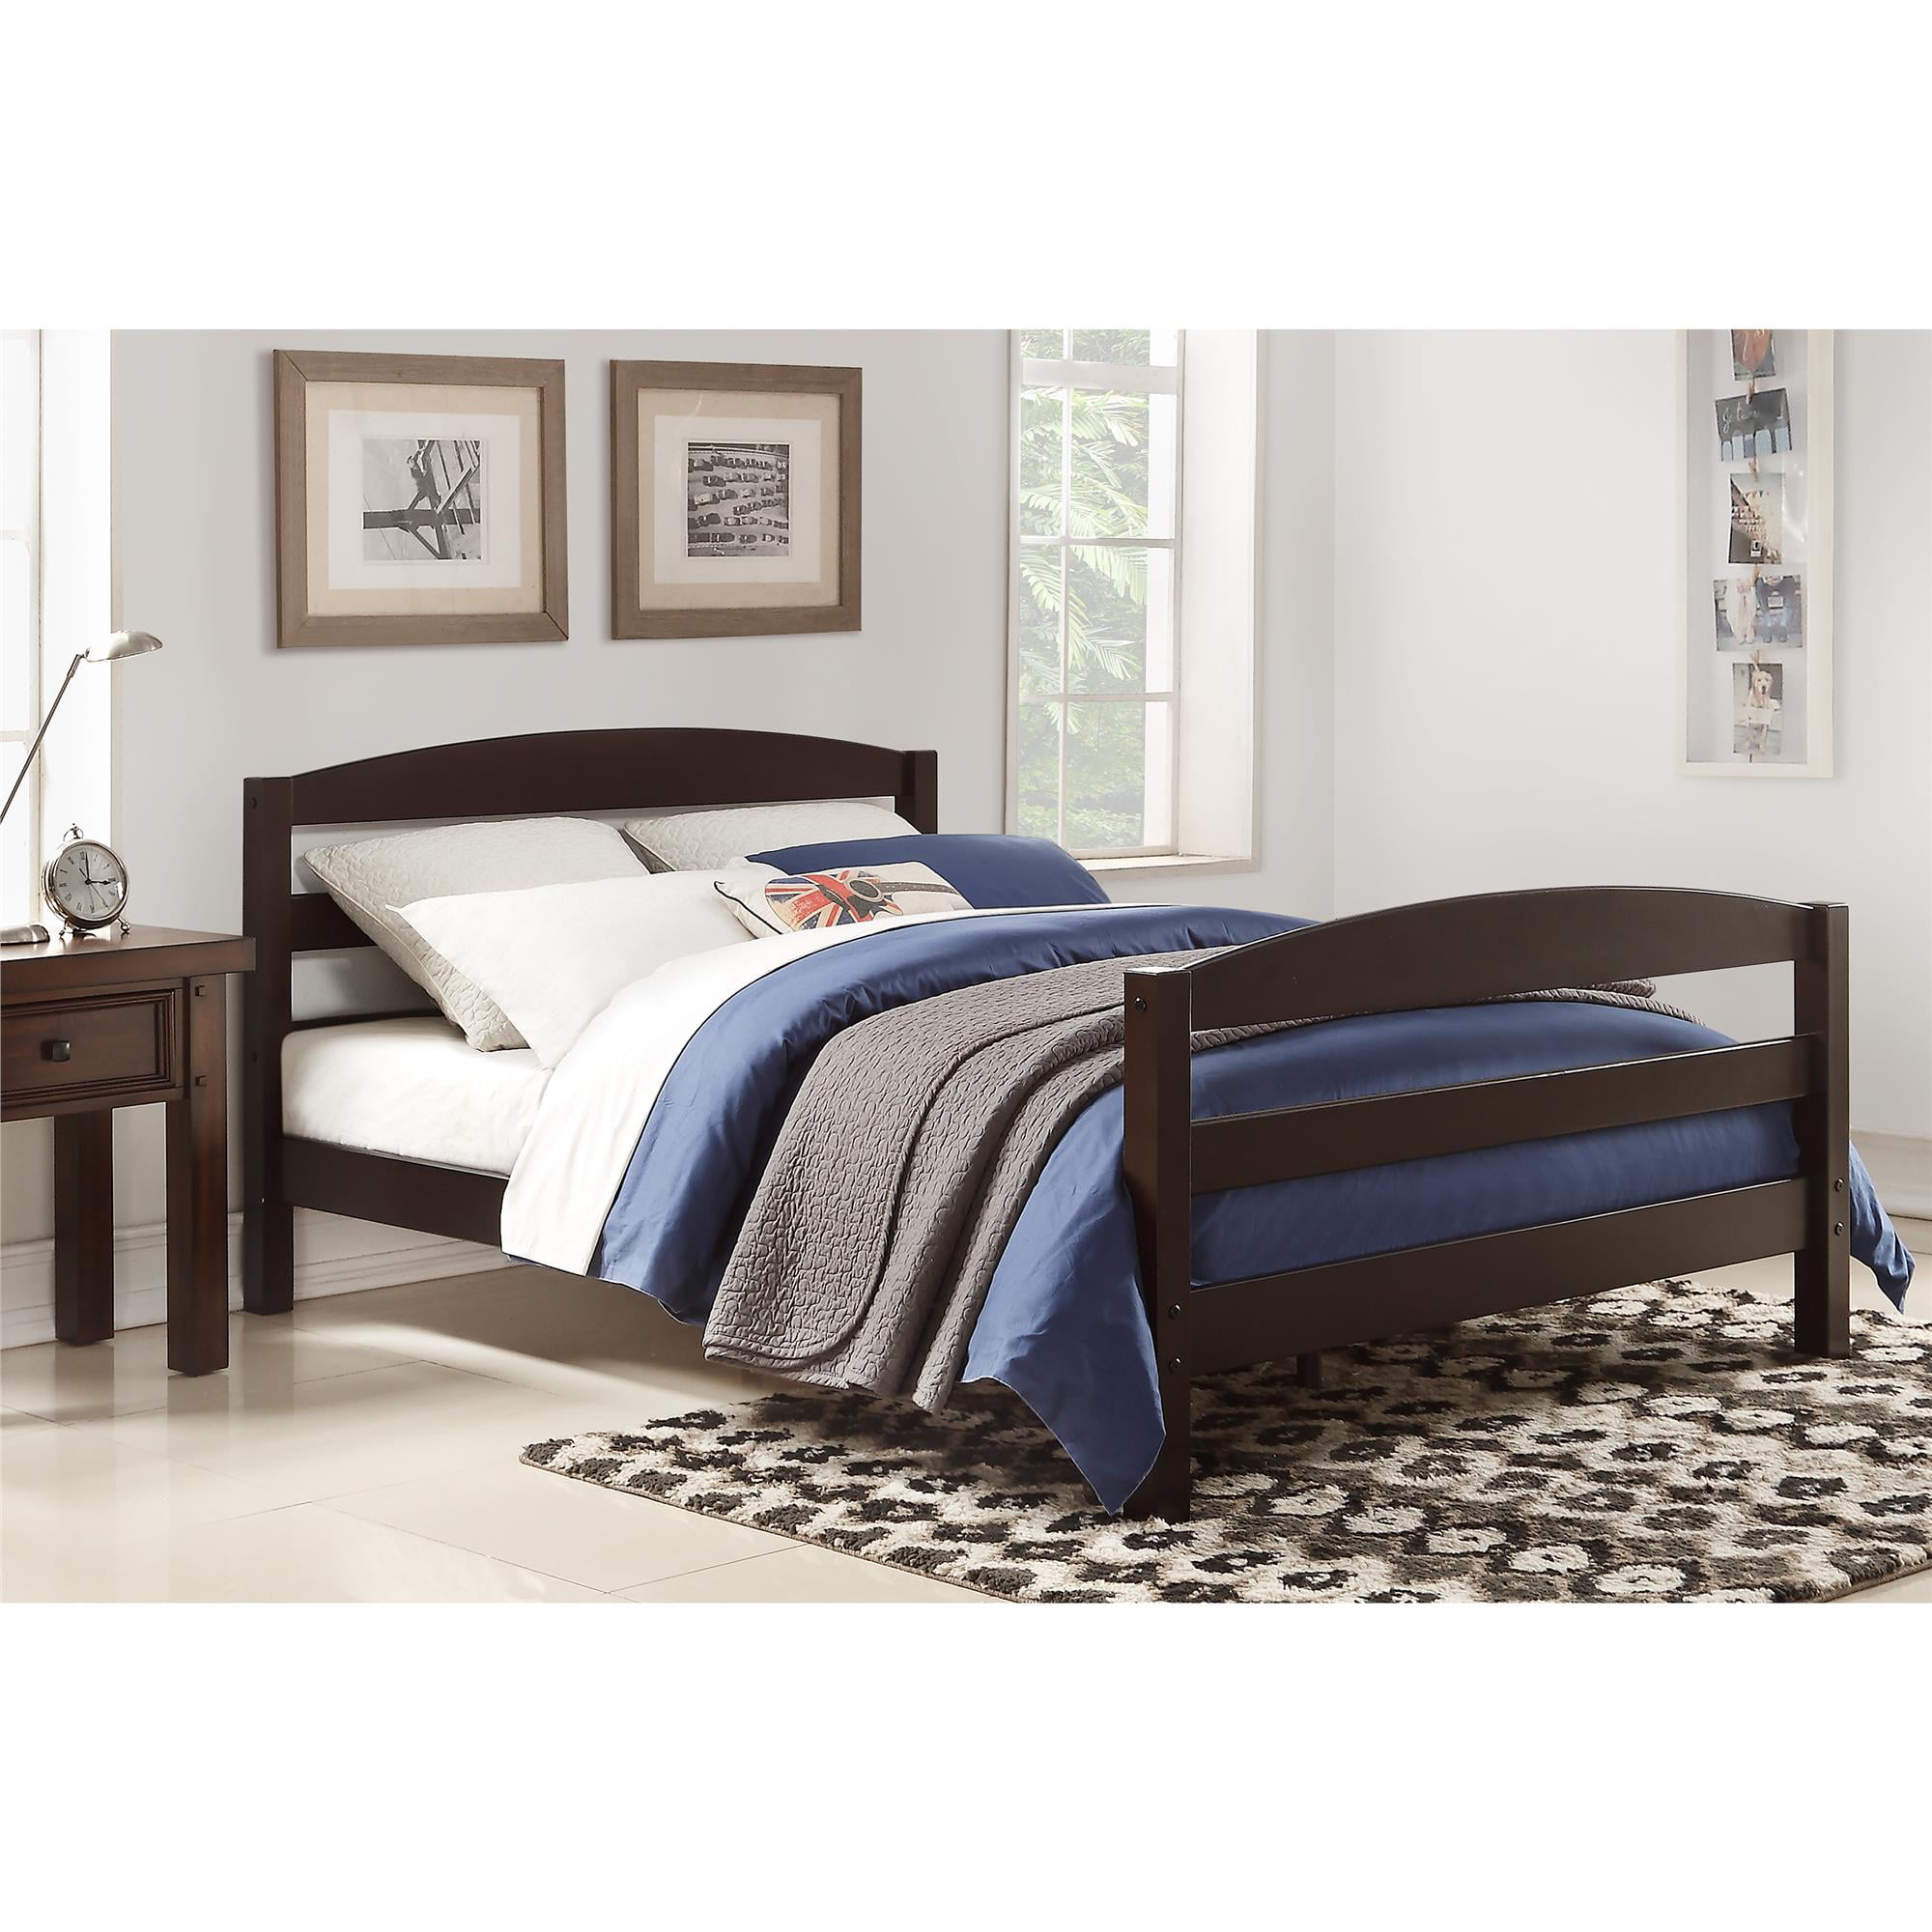 Better Homes And Gardens Wood Bed Full Size Bedroom Frame